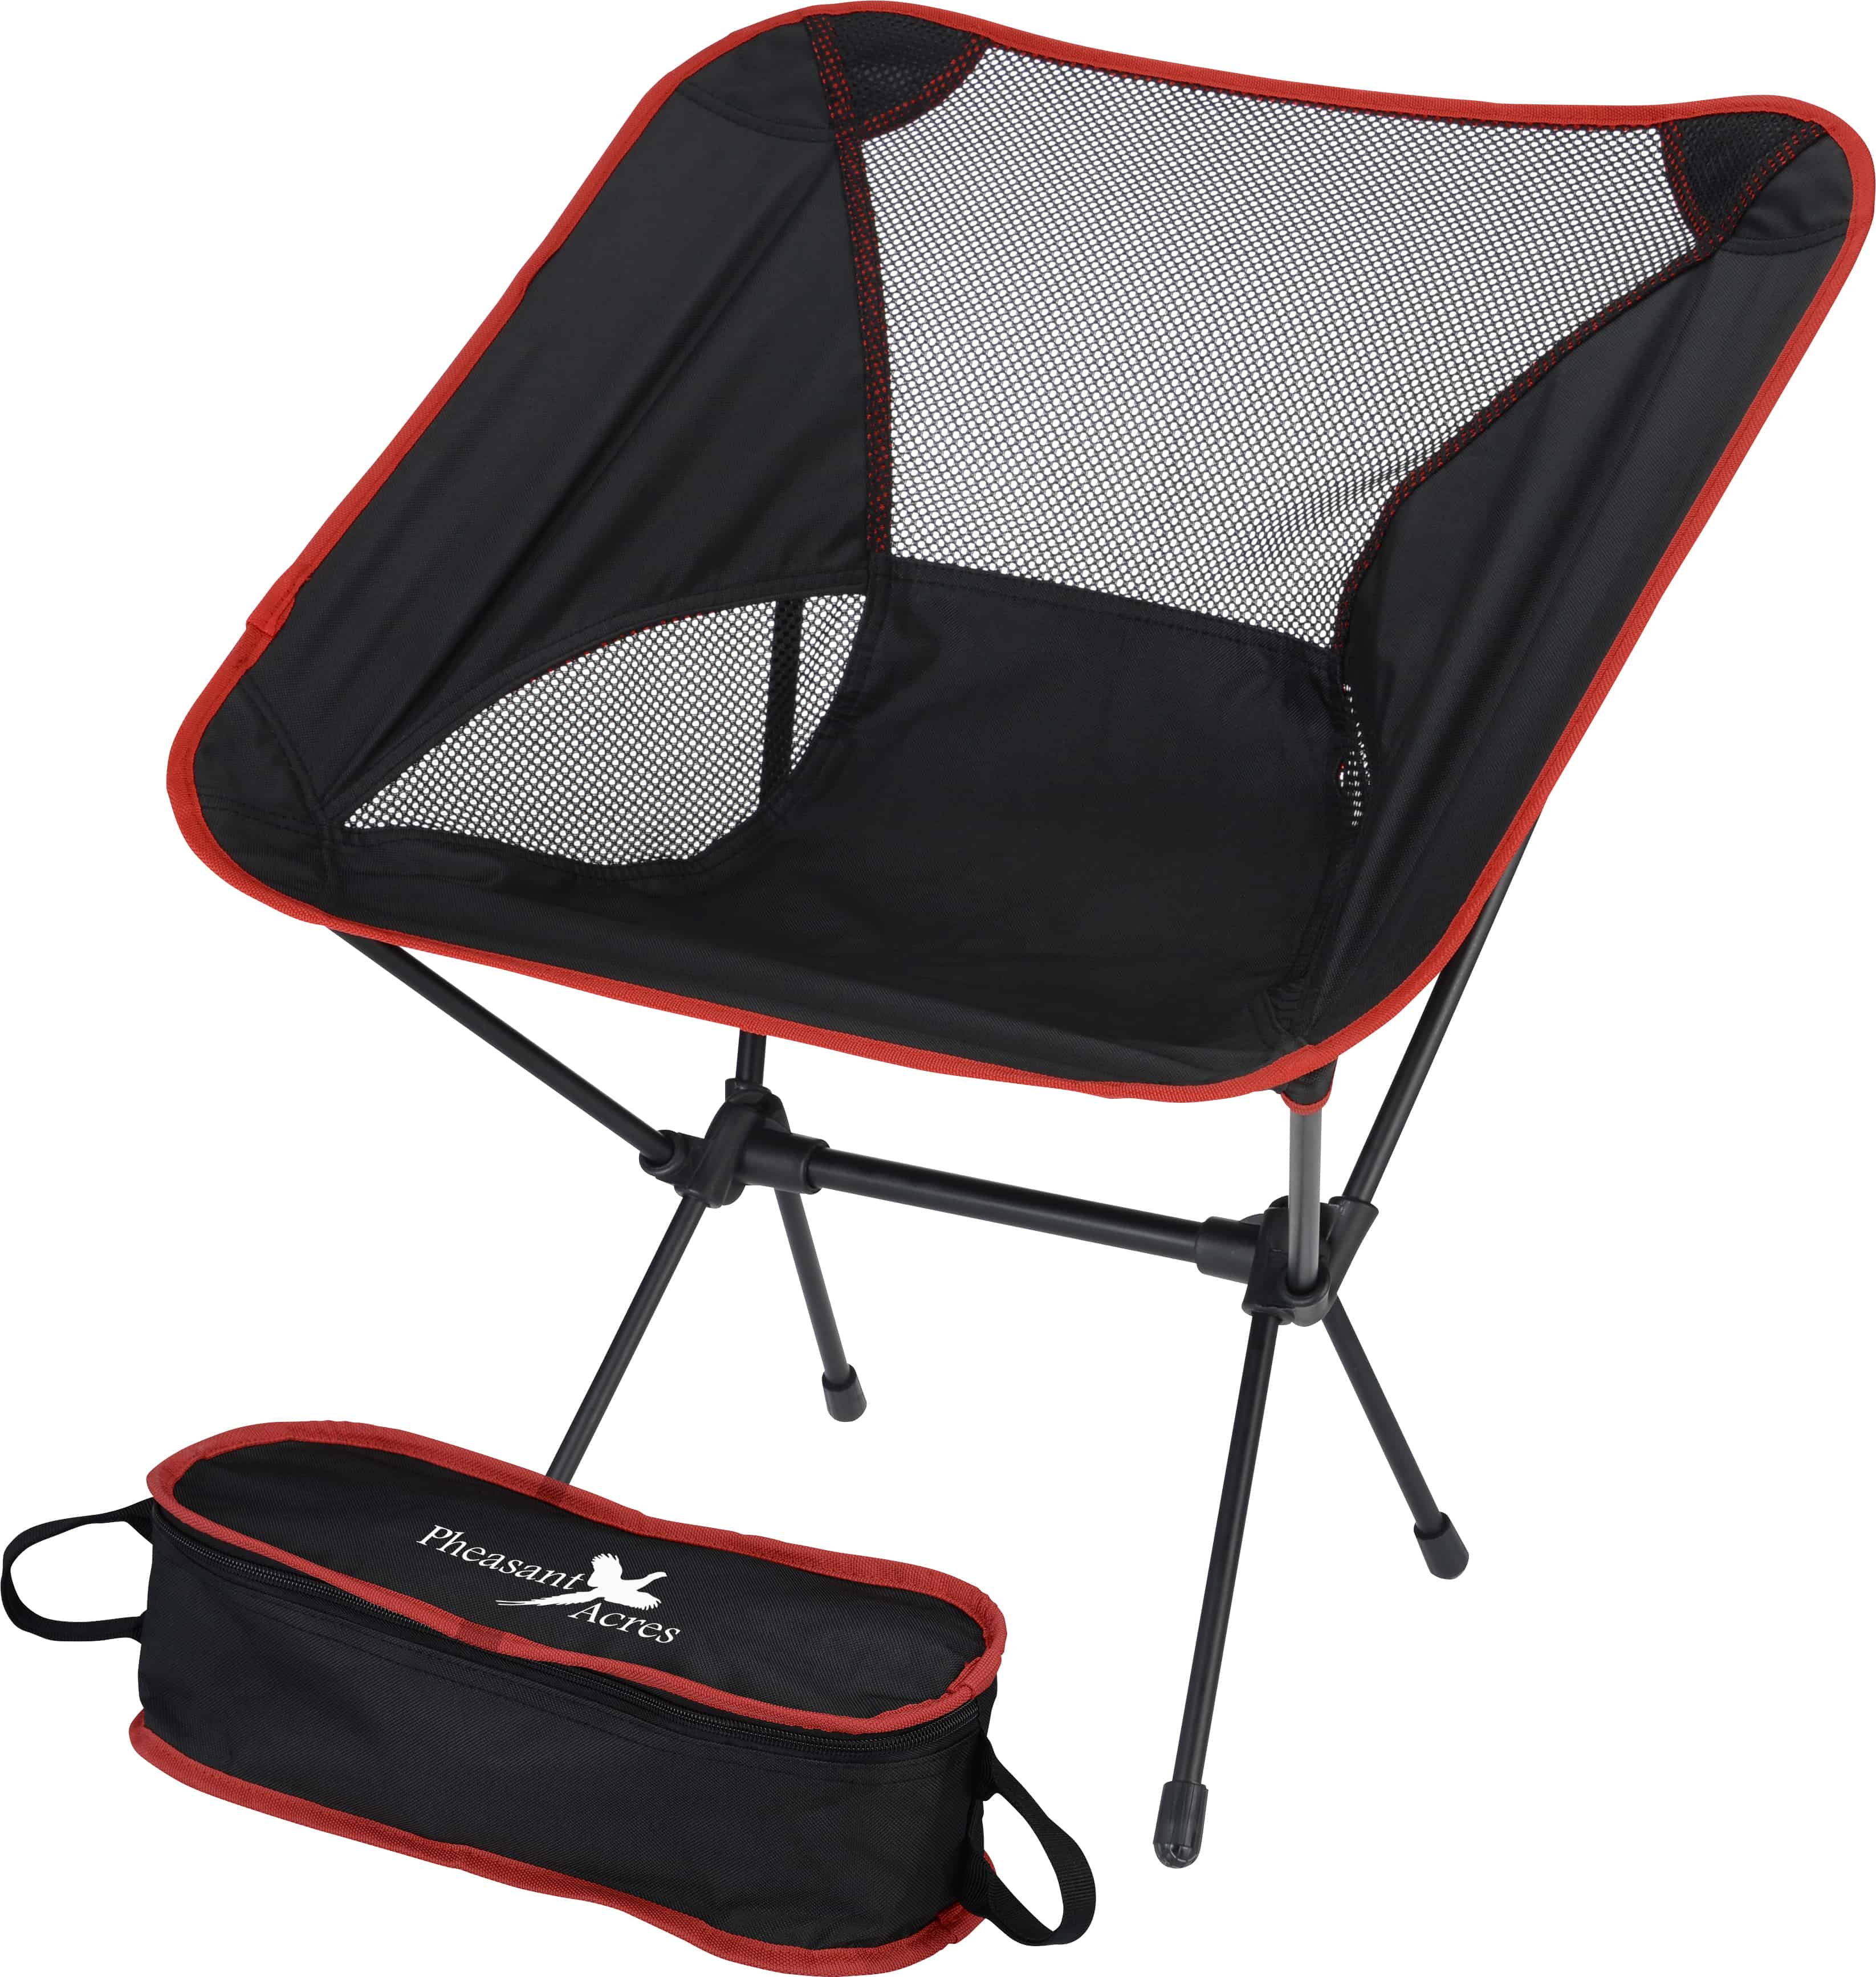 An Outdoor Folding Chair with Travel Bag.